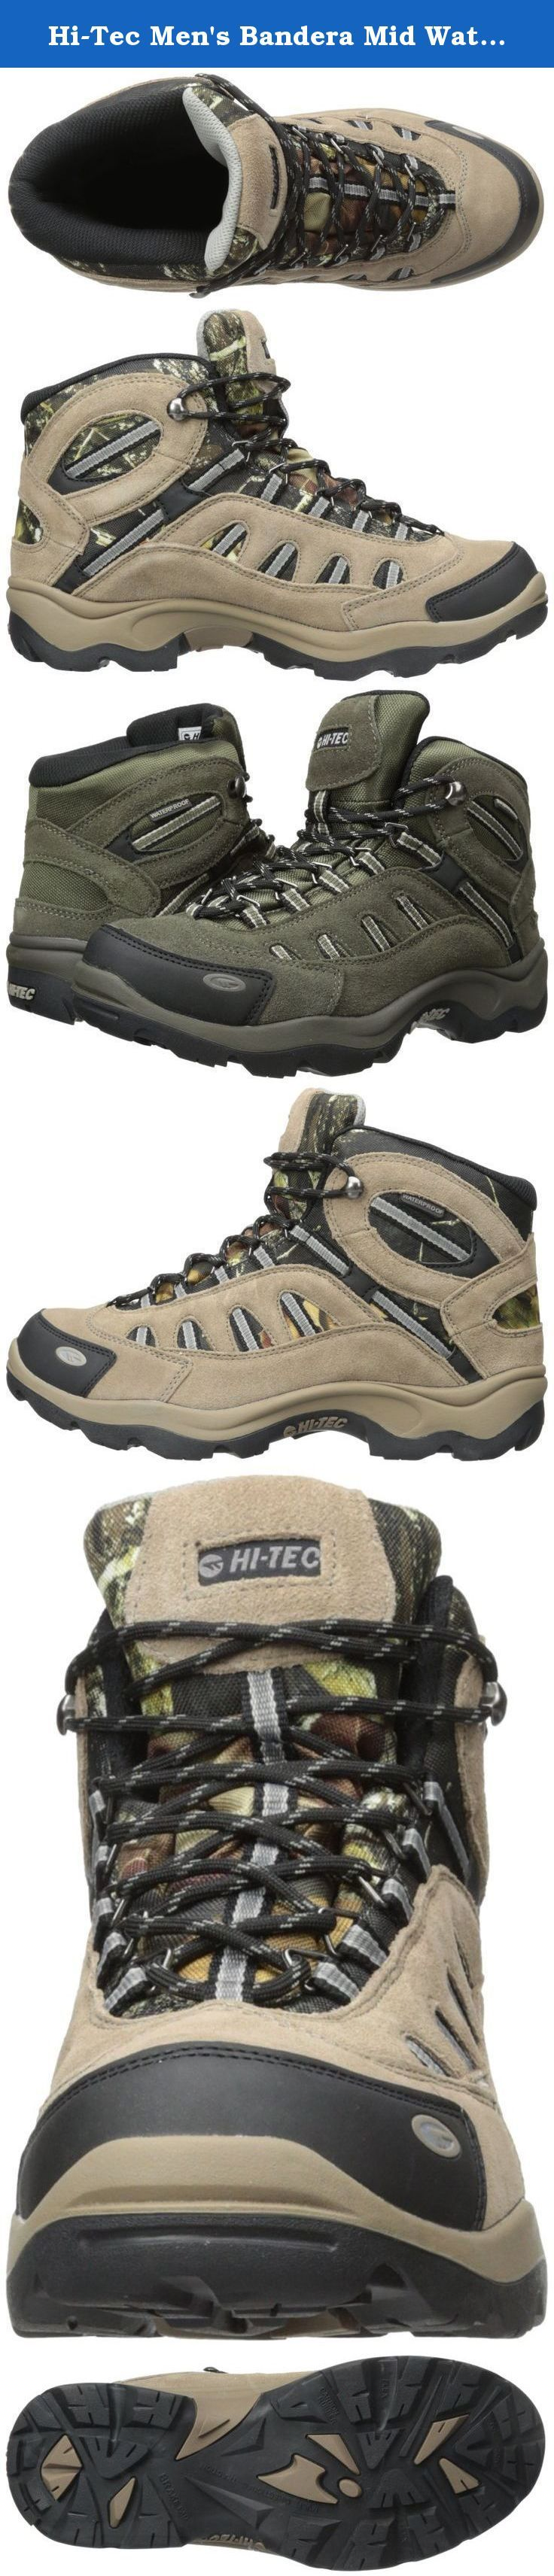 Hi-Tec Men's Bandera Mid Waterproof Hiking Boot. Traversing wet terrain will be a cinch in these Hi-Tec® men's Bandera waterproof mid hiking boots. Their Dri-Tec membrane and moisture-wicking lining will keep your feet nice and dry, while rustproof hardware prevents damage caused by the elements. The upper is comprised of a powerhouse suede/mesh combo for durability and breathability.